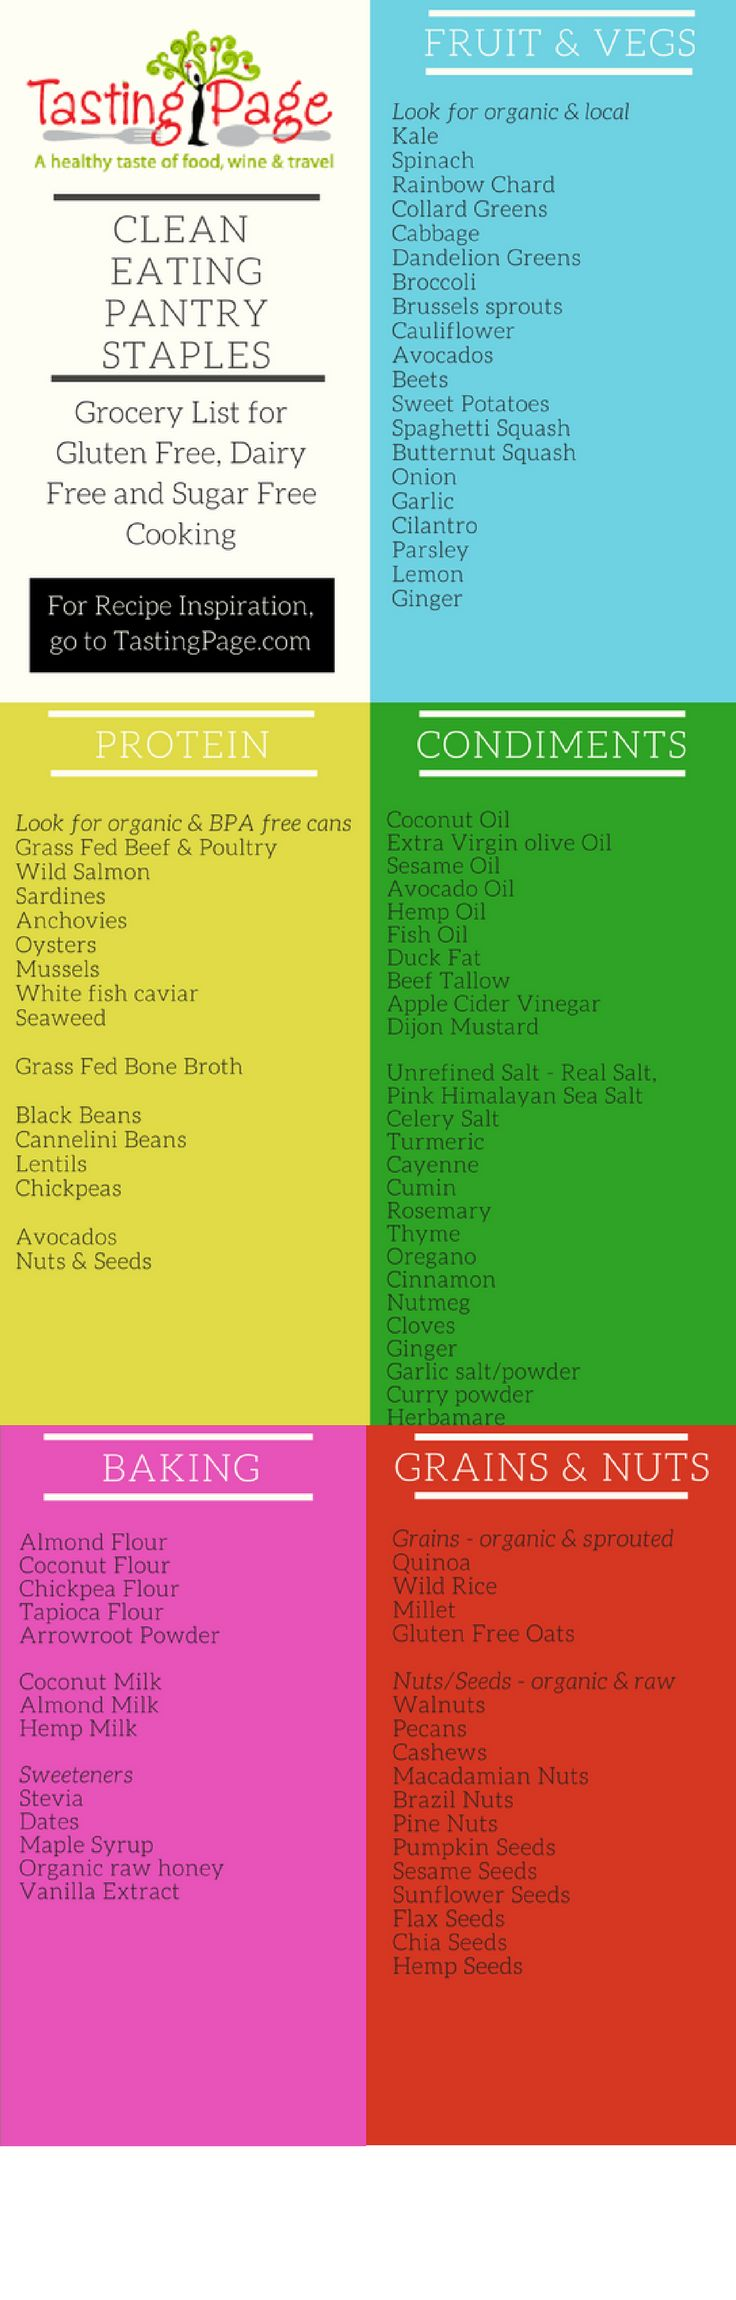 Looking to eat healthier? Start with this downloadable clean eating pantry list. A grocery list for gluten free, dairy free and sugar free cooking | TastingPage.com